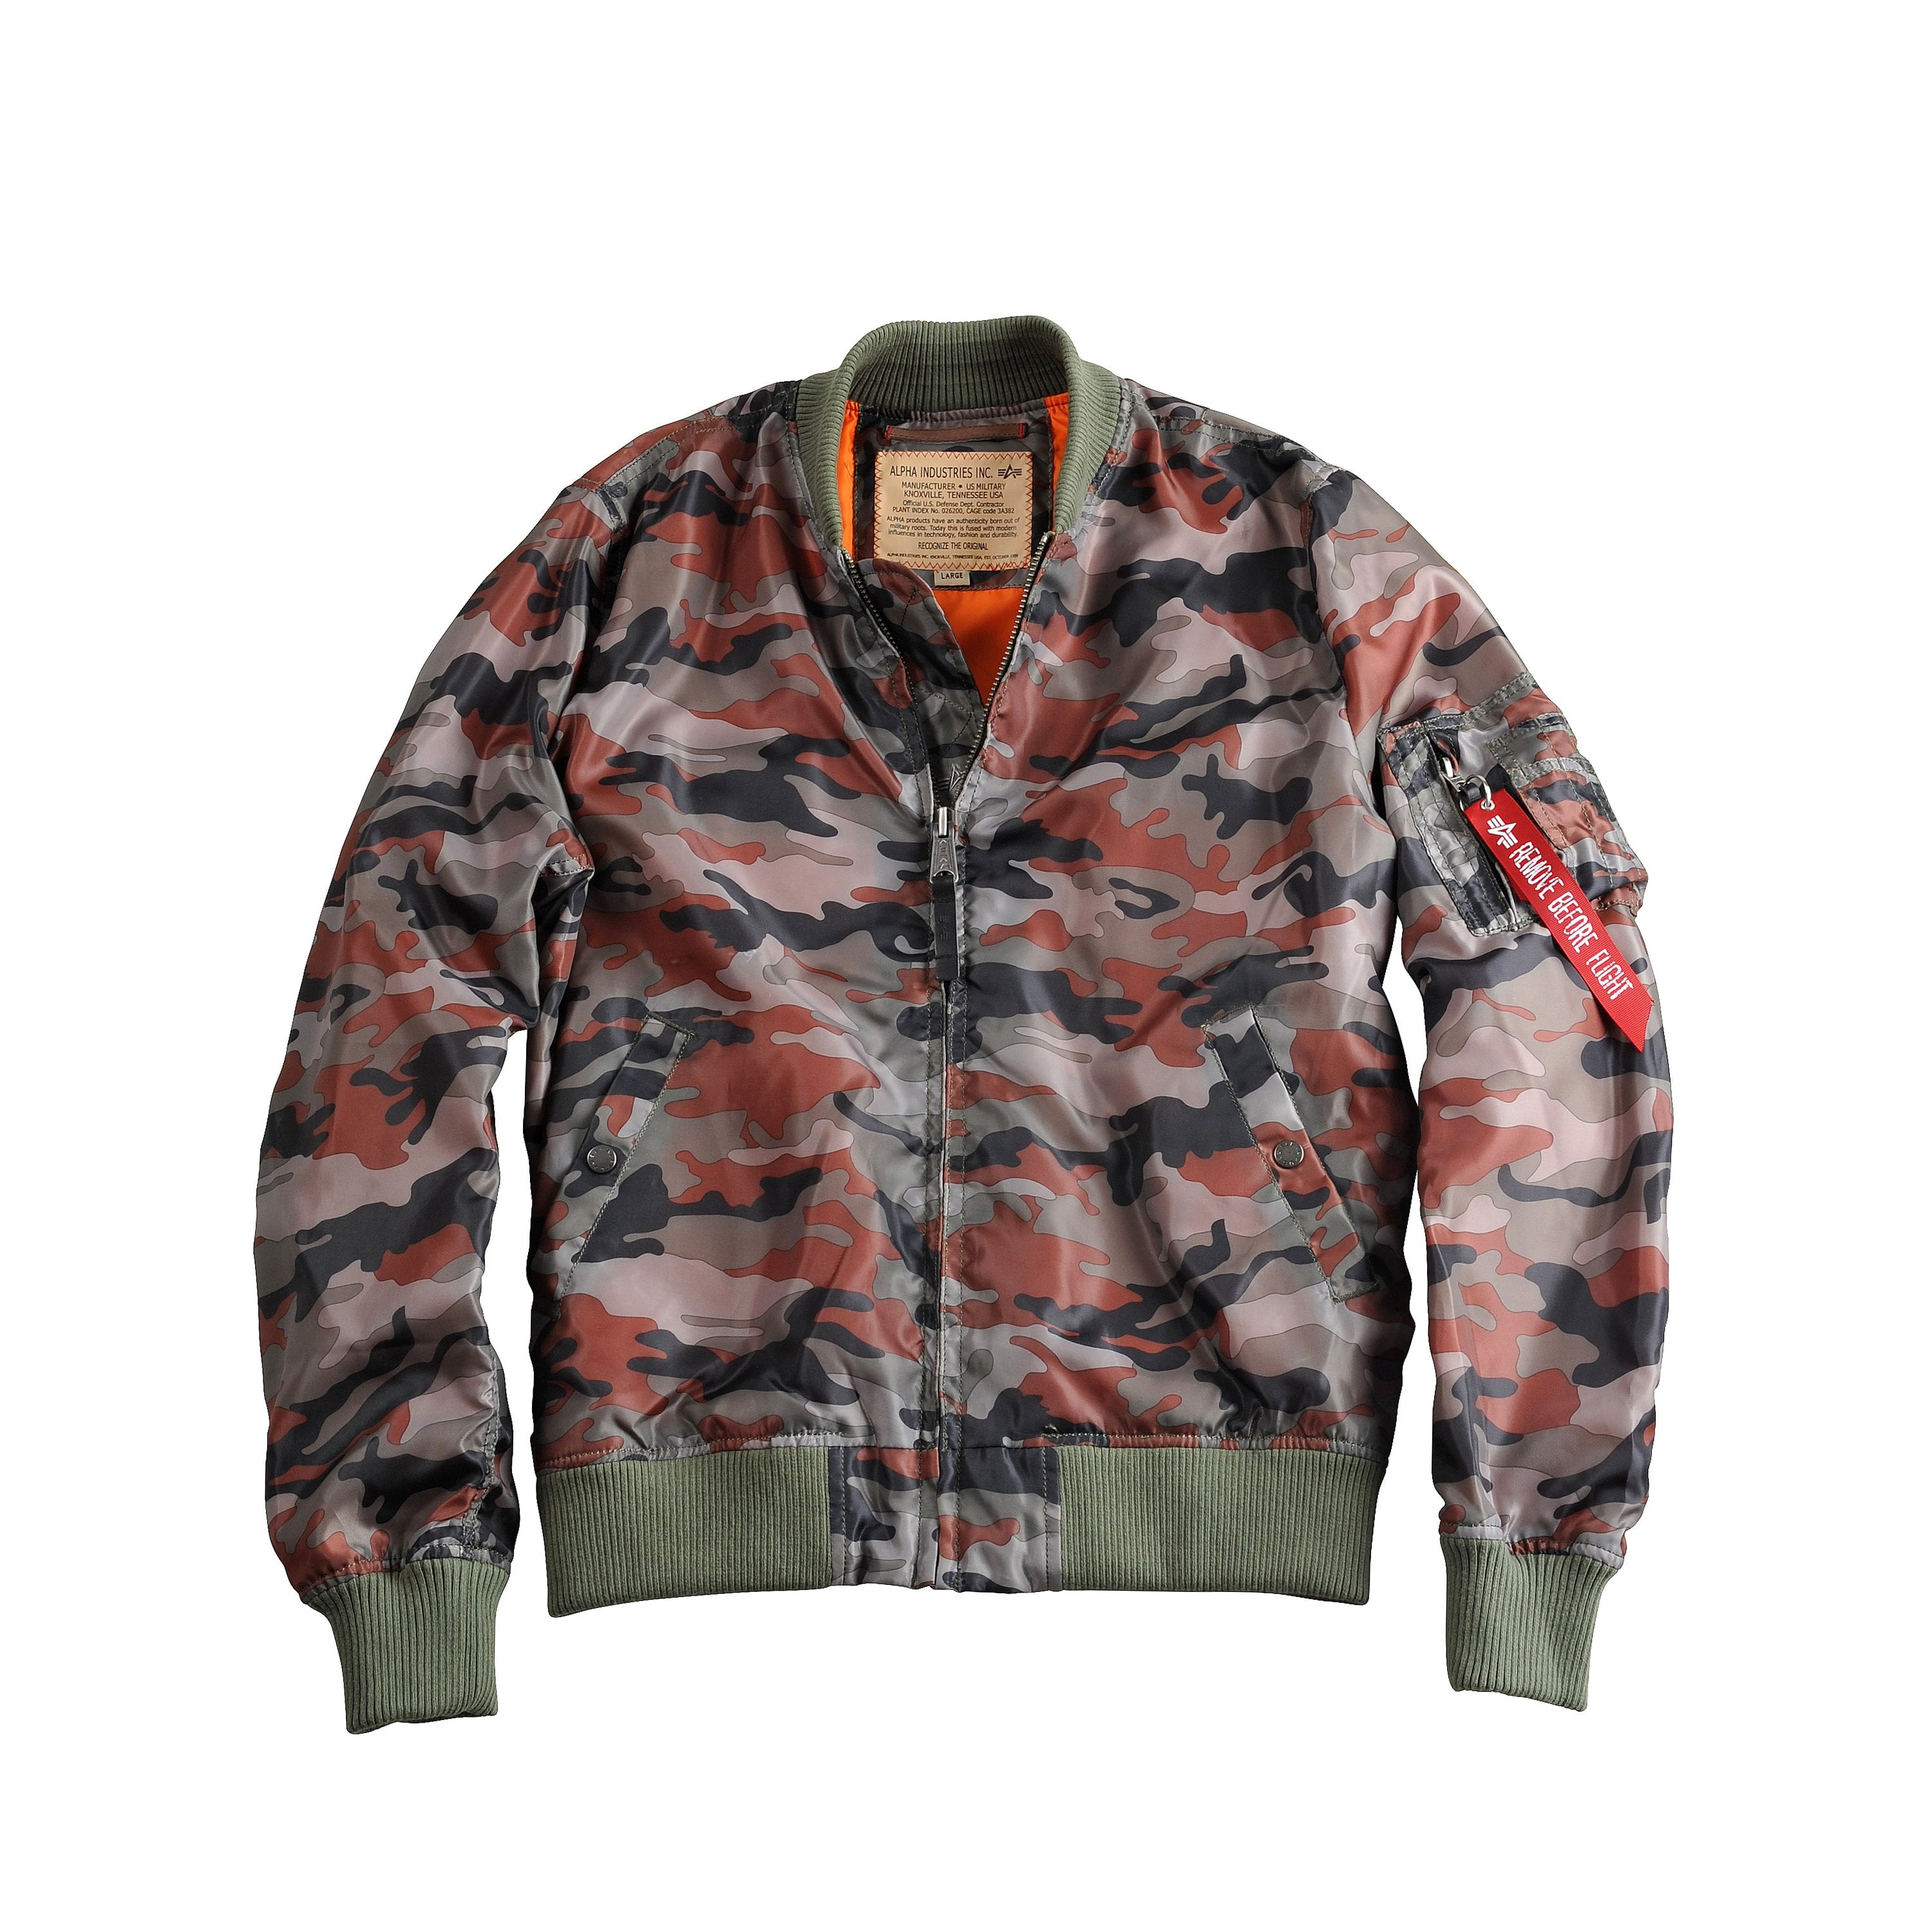 83550f903 MA-1 TT Summer Flight Jacket